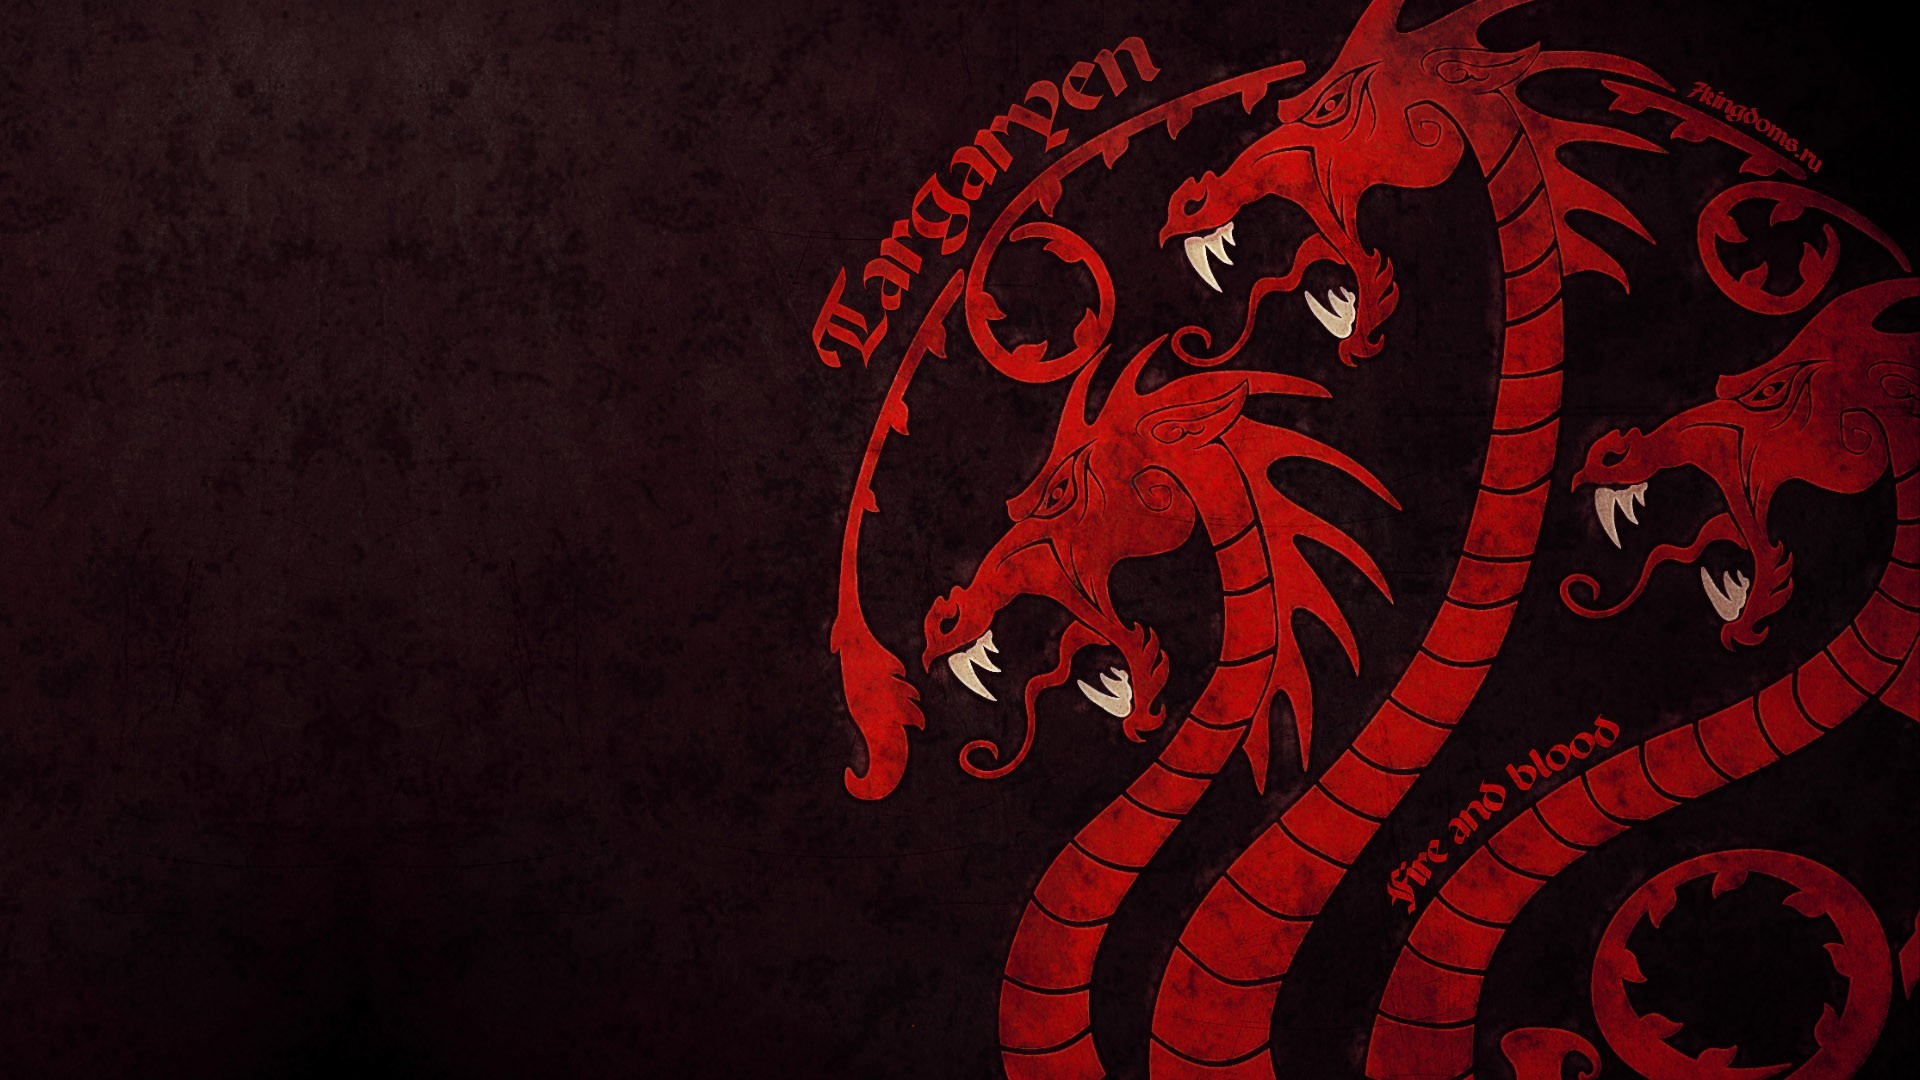 1920x1080 Game of Thrones House Targaryen - Wallpaper, High Definition, High .